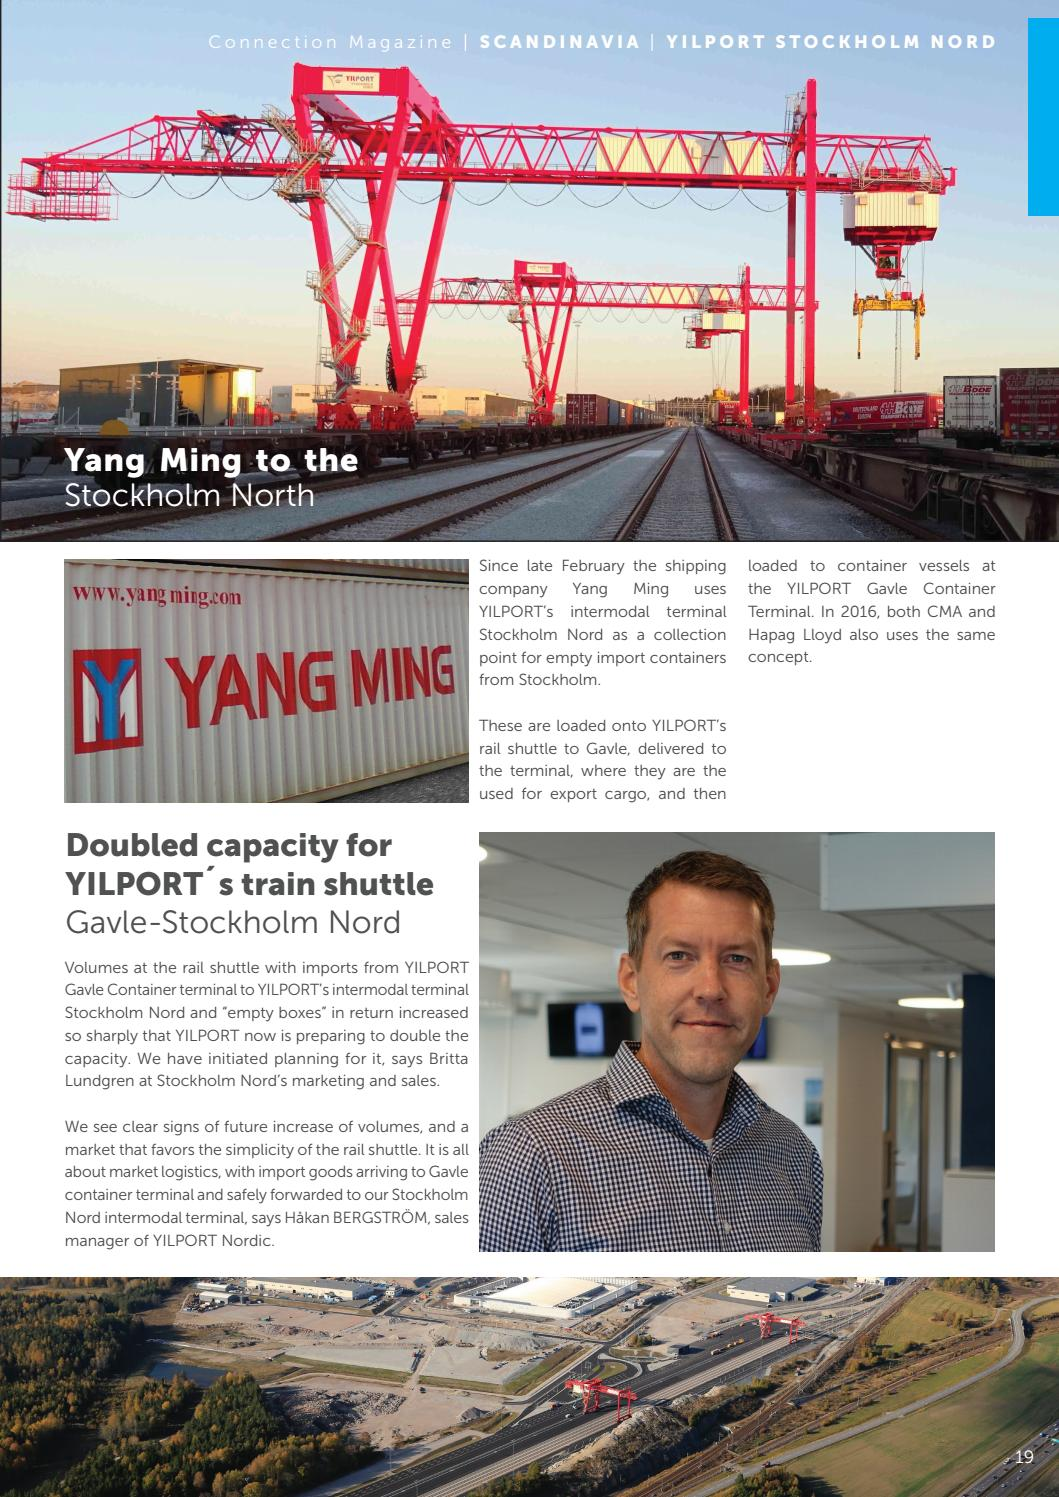 YPH Connection Quarterly Corporate Magazine by YILPORT Holding